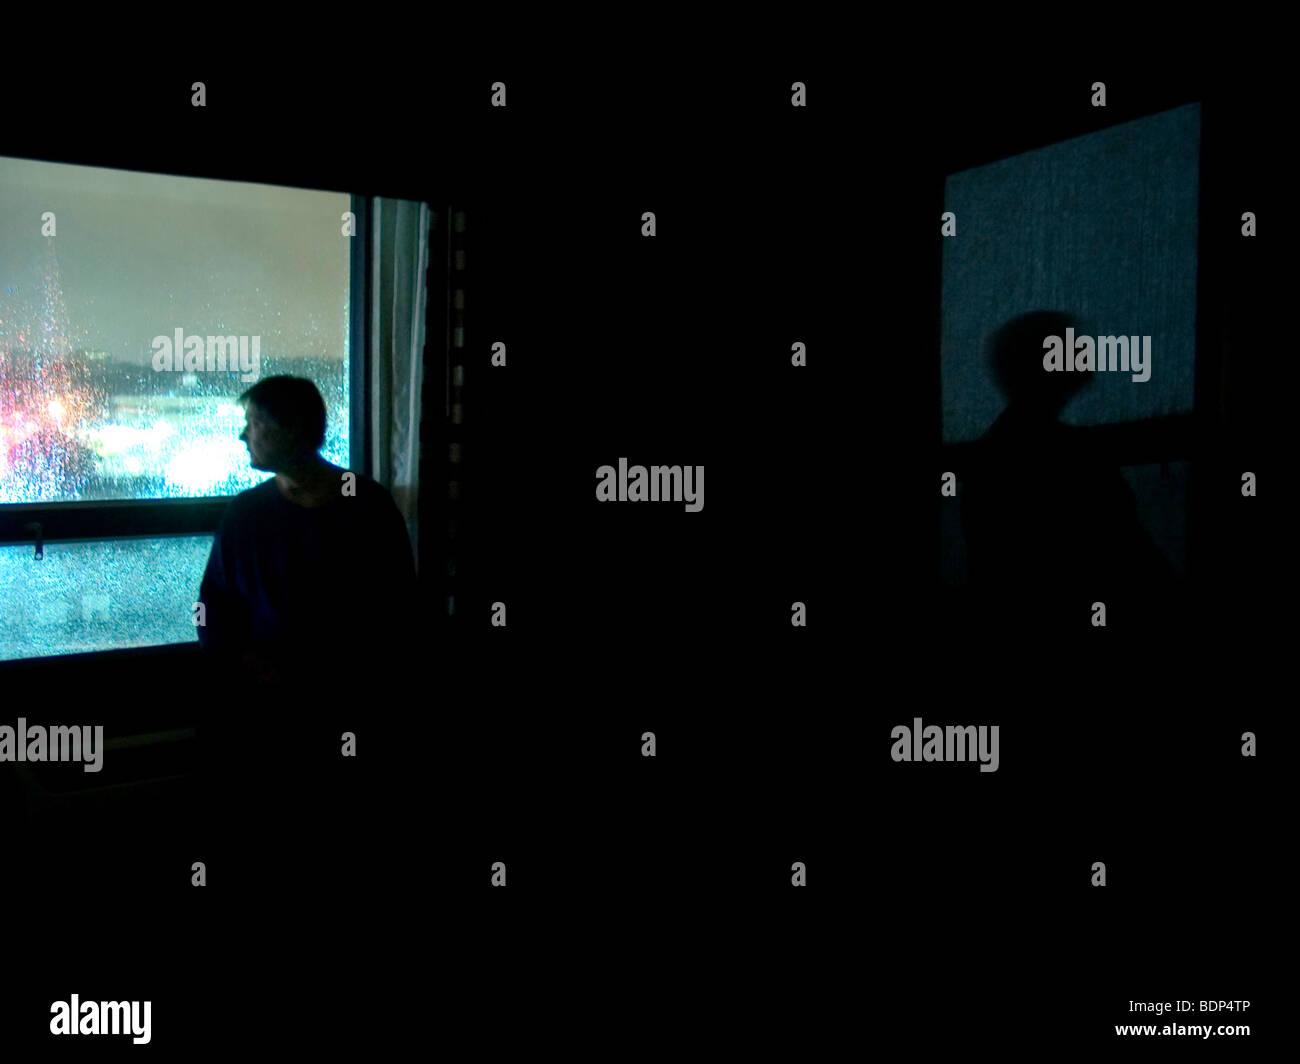 A figure standing in a dark room looking our of a window - Stock Image